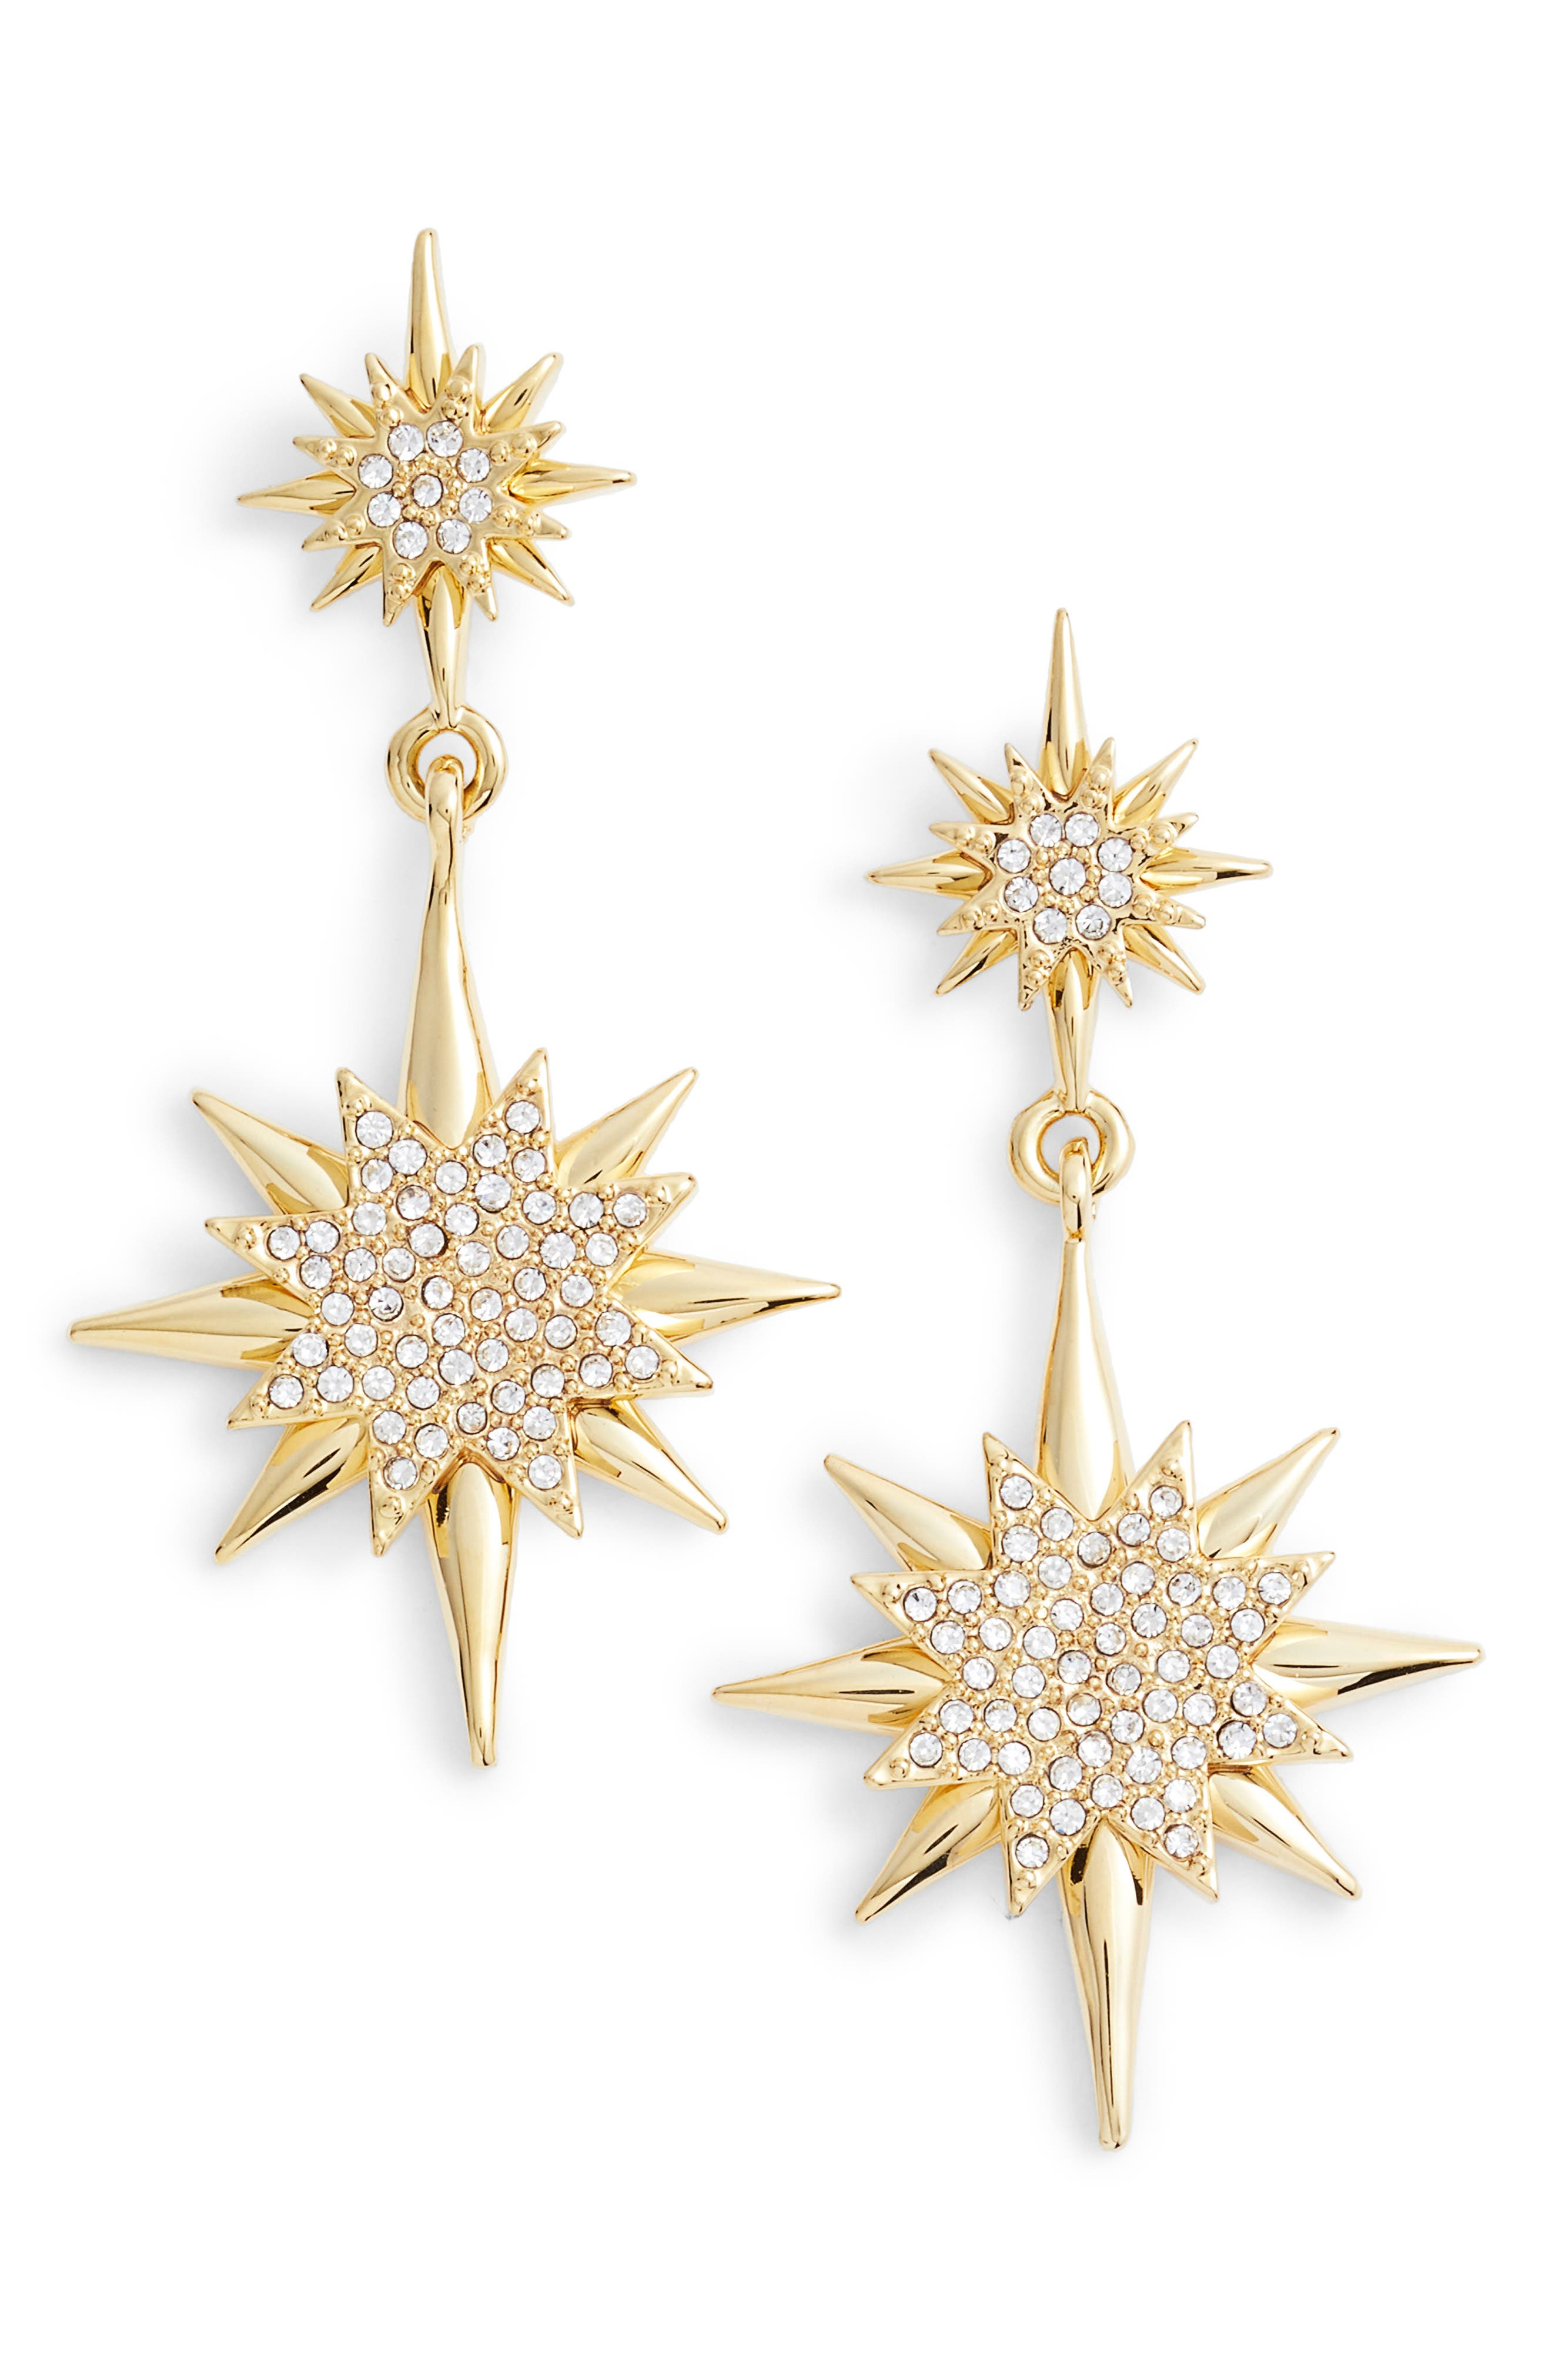 Crystal Starburst Drop Earrings,                             Main thumbnail 1, color,                             Gold